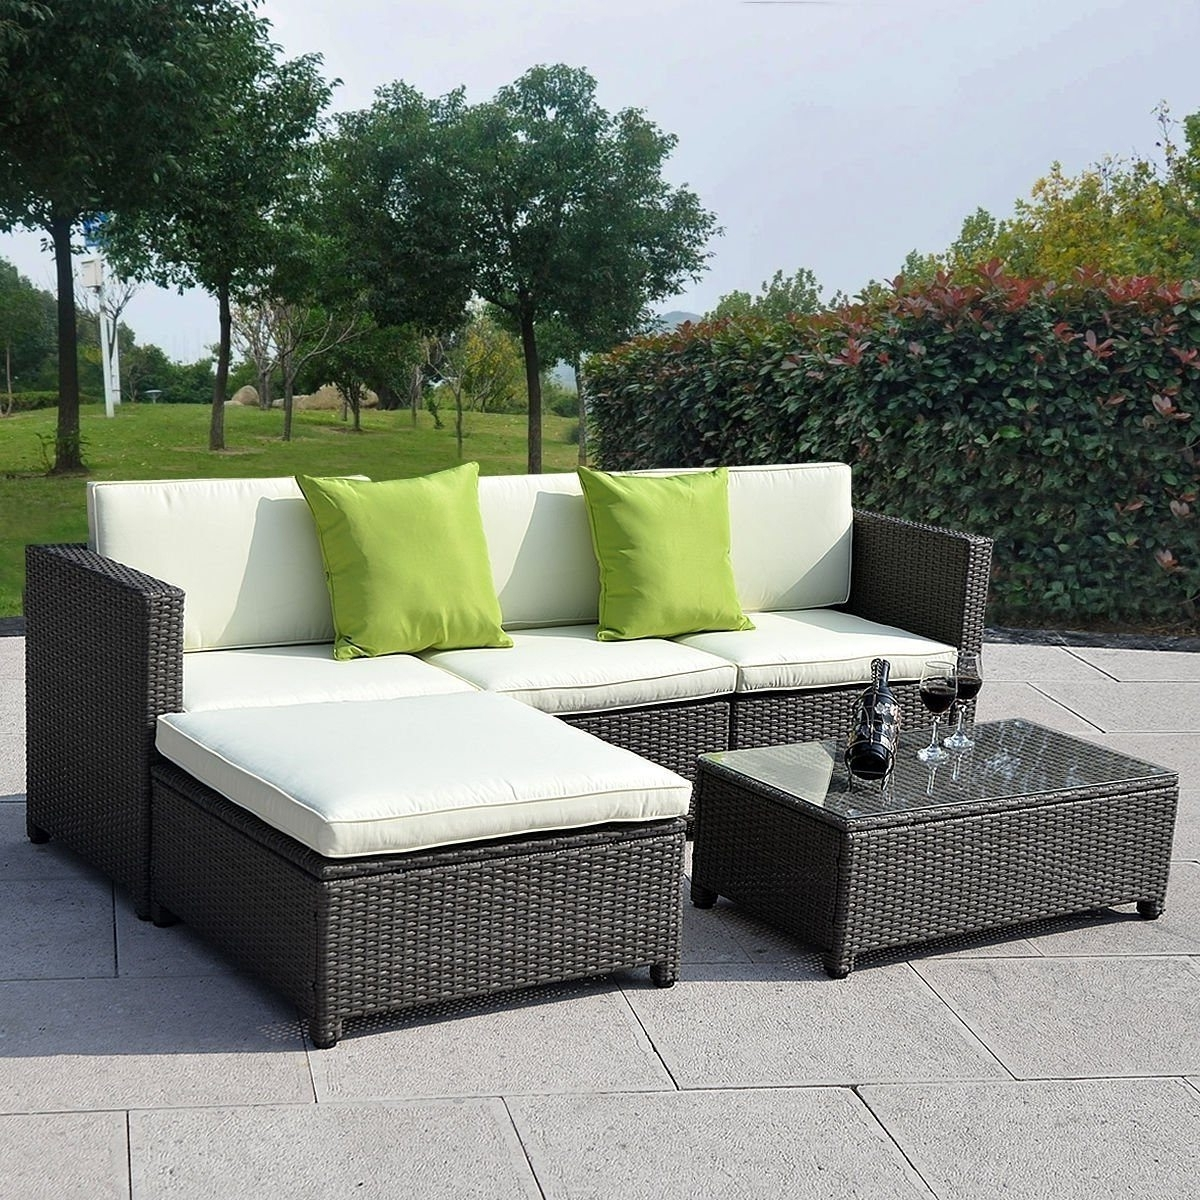 Outdoor Patio Sofa Furniture – Outdoor Designs Inside 2017 Outdoor Sofa Chairs (View 5 of 15)